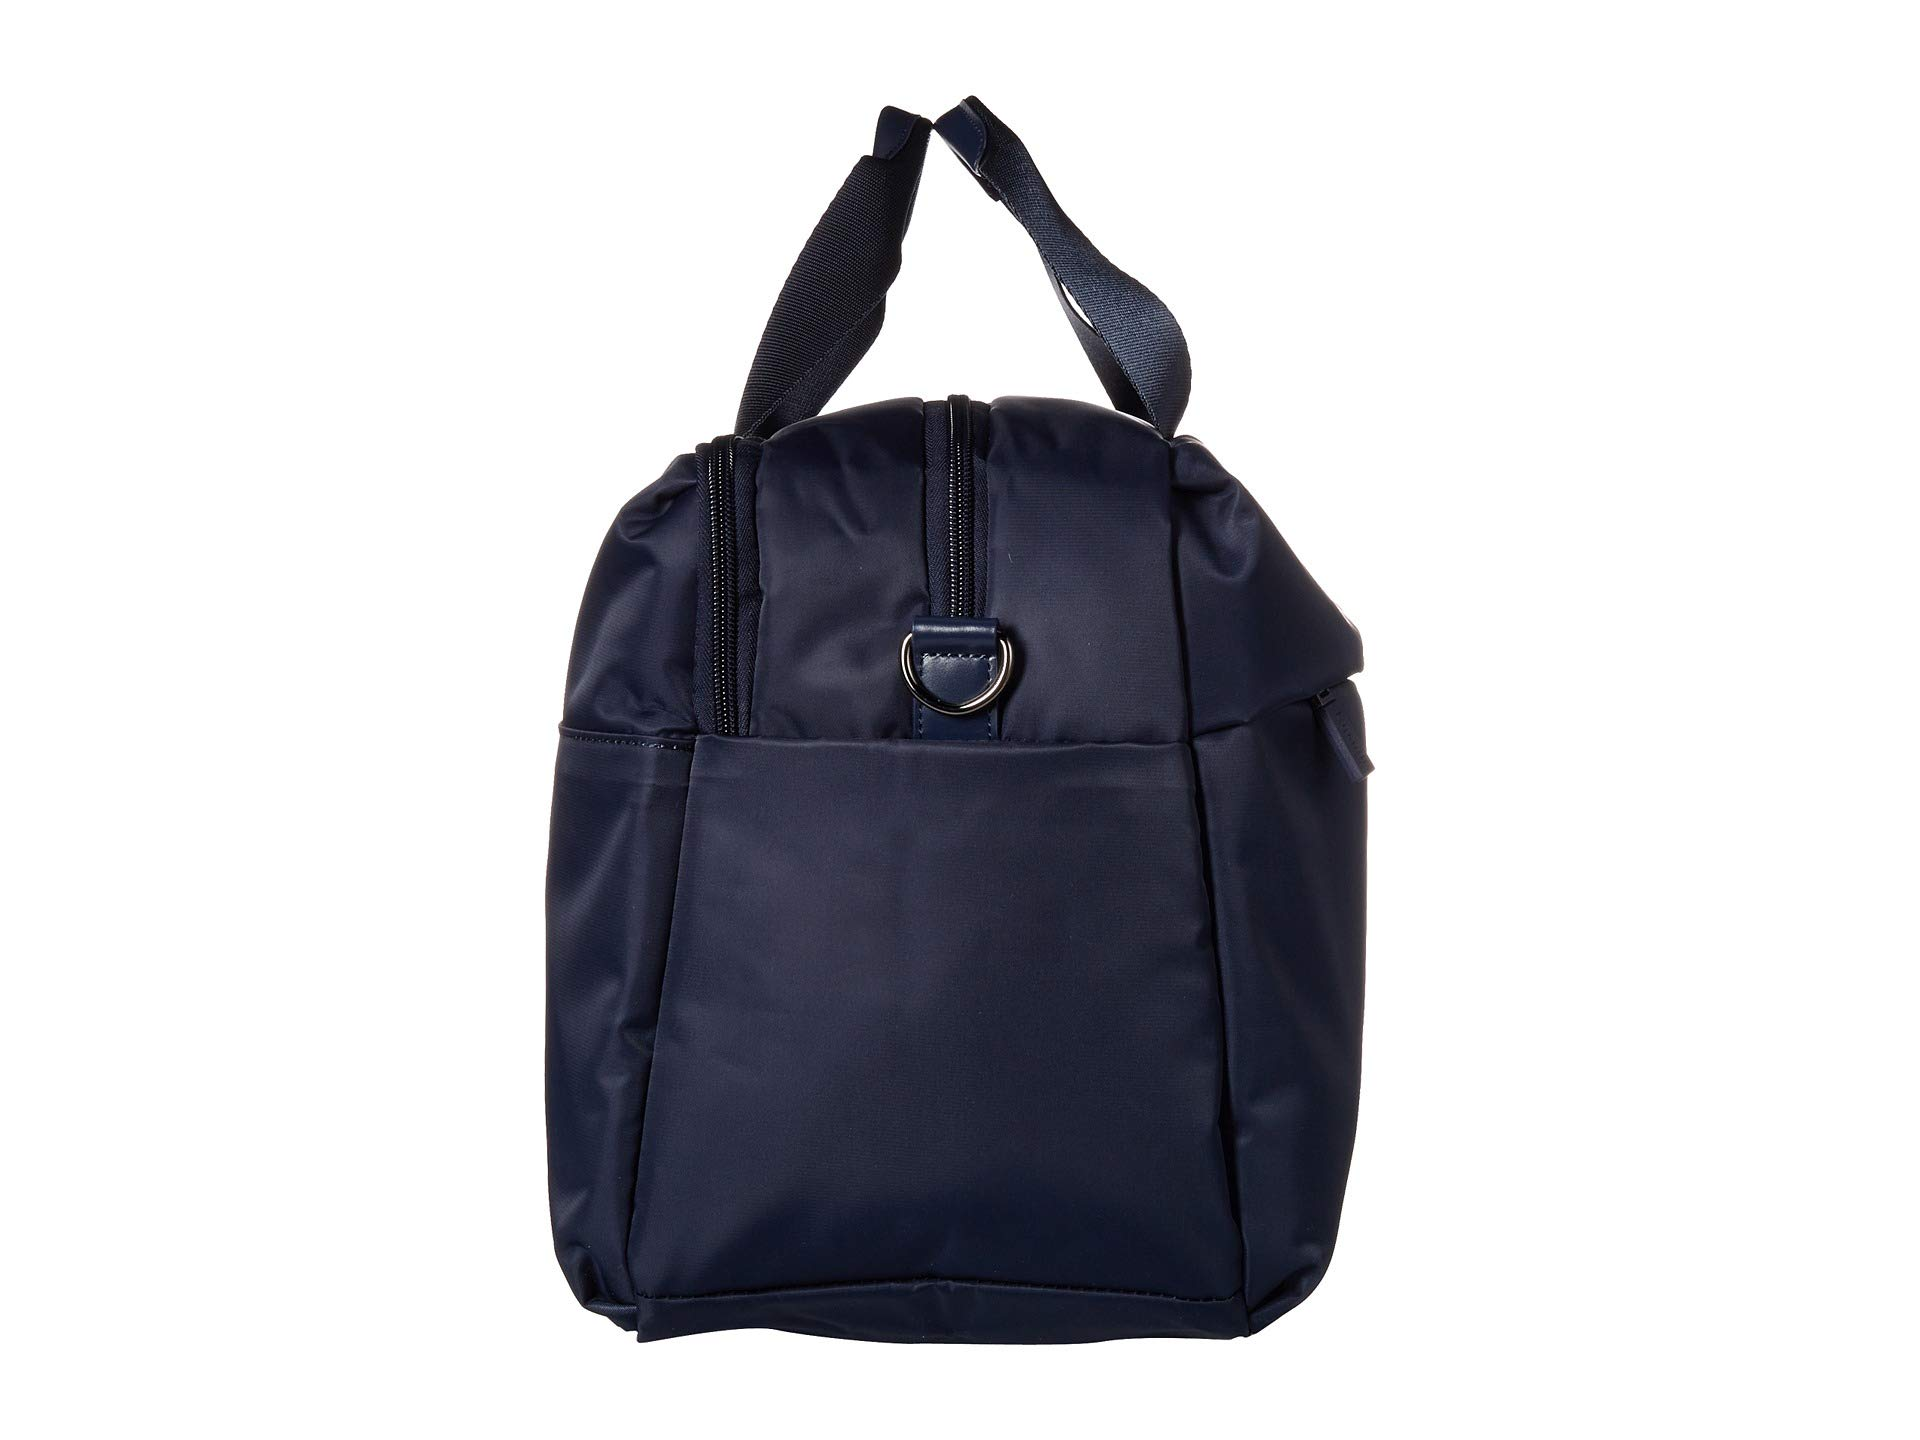 24 City Navy Plume Paris Lipault Bag Hour S7nZwx1q